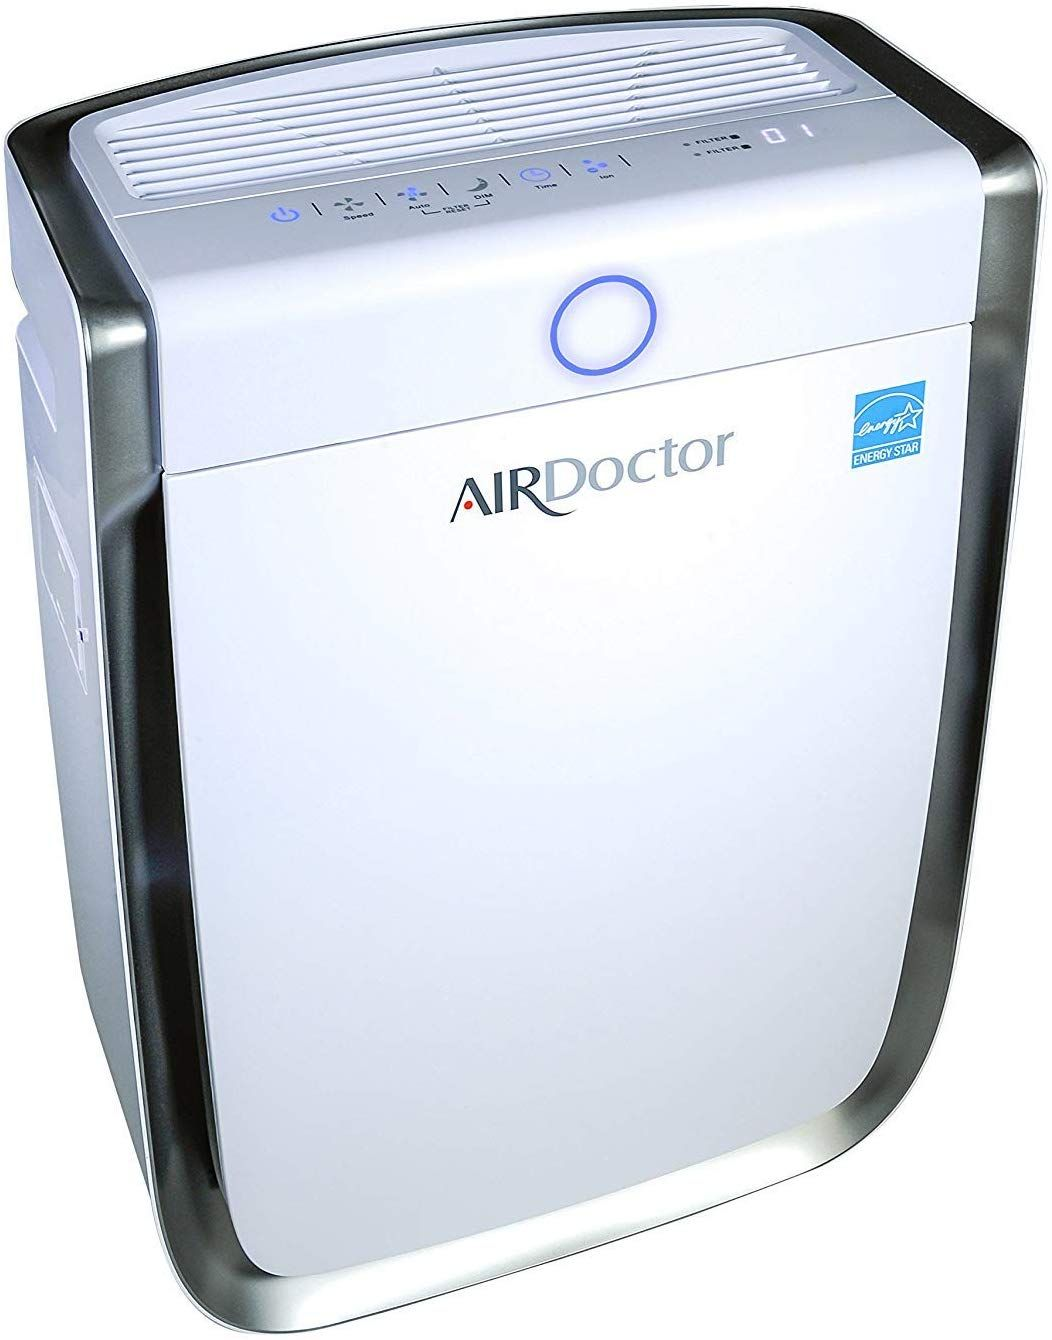 "!""REVIEW"" AIRDOCTOR 4in1 Air Purifier UltraHEPA, Carbon"